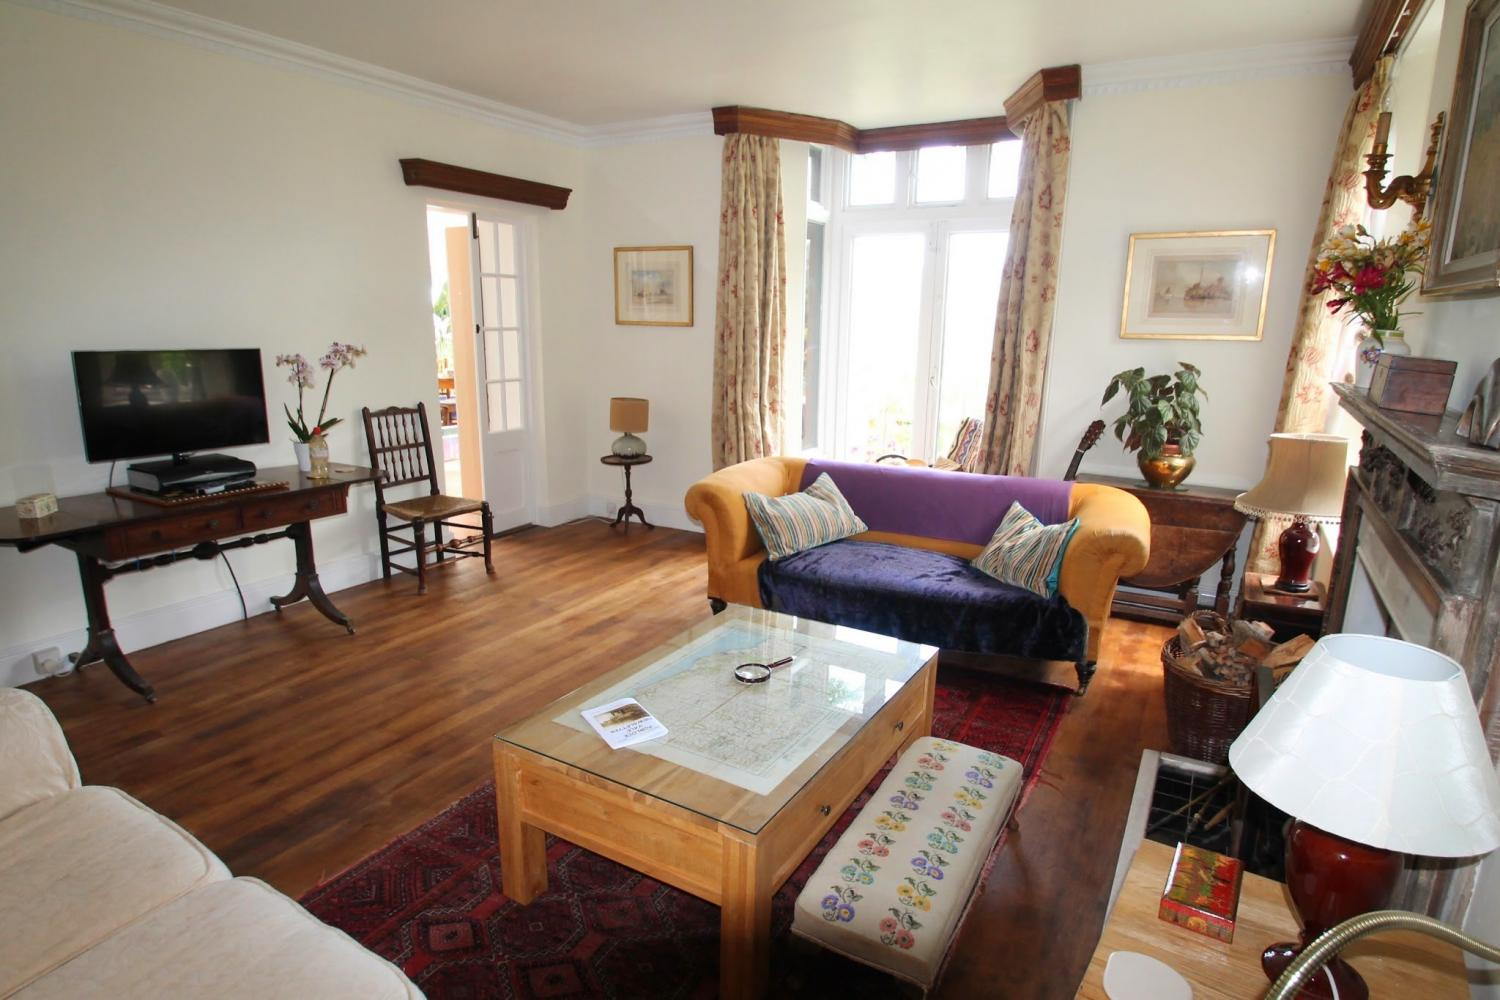 Chapel Knap Holiday Cottage In Porlock Weir13